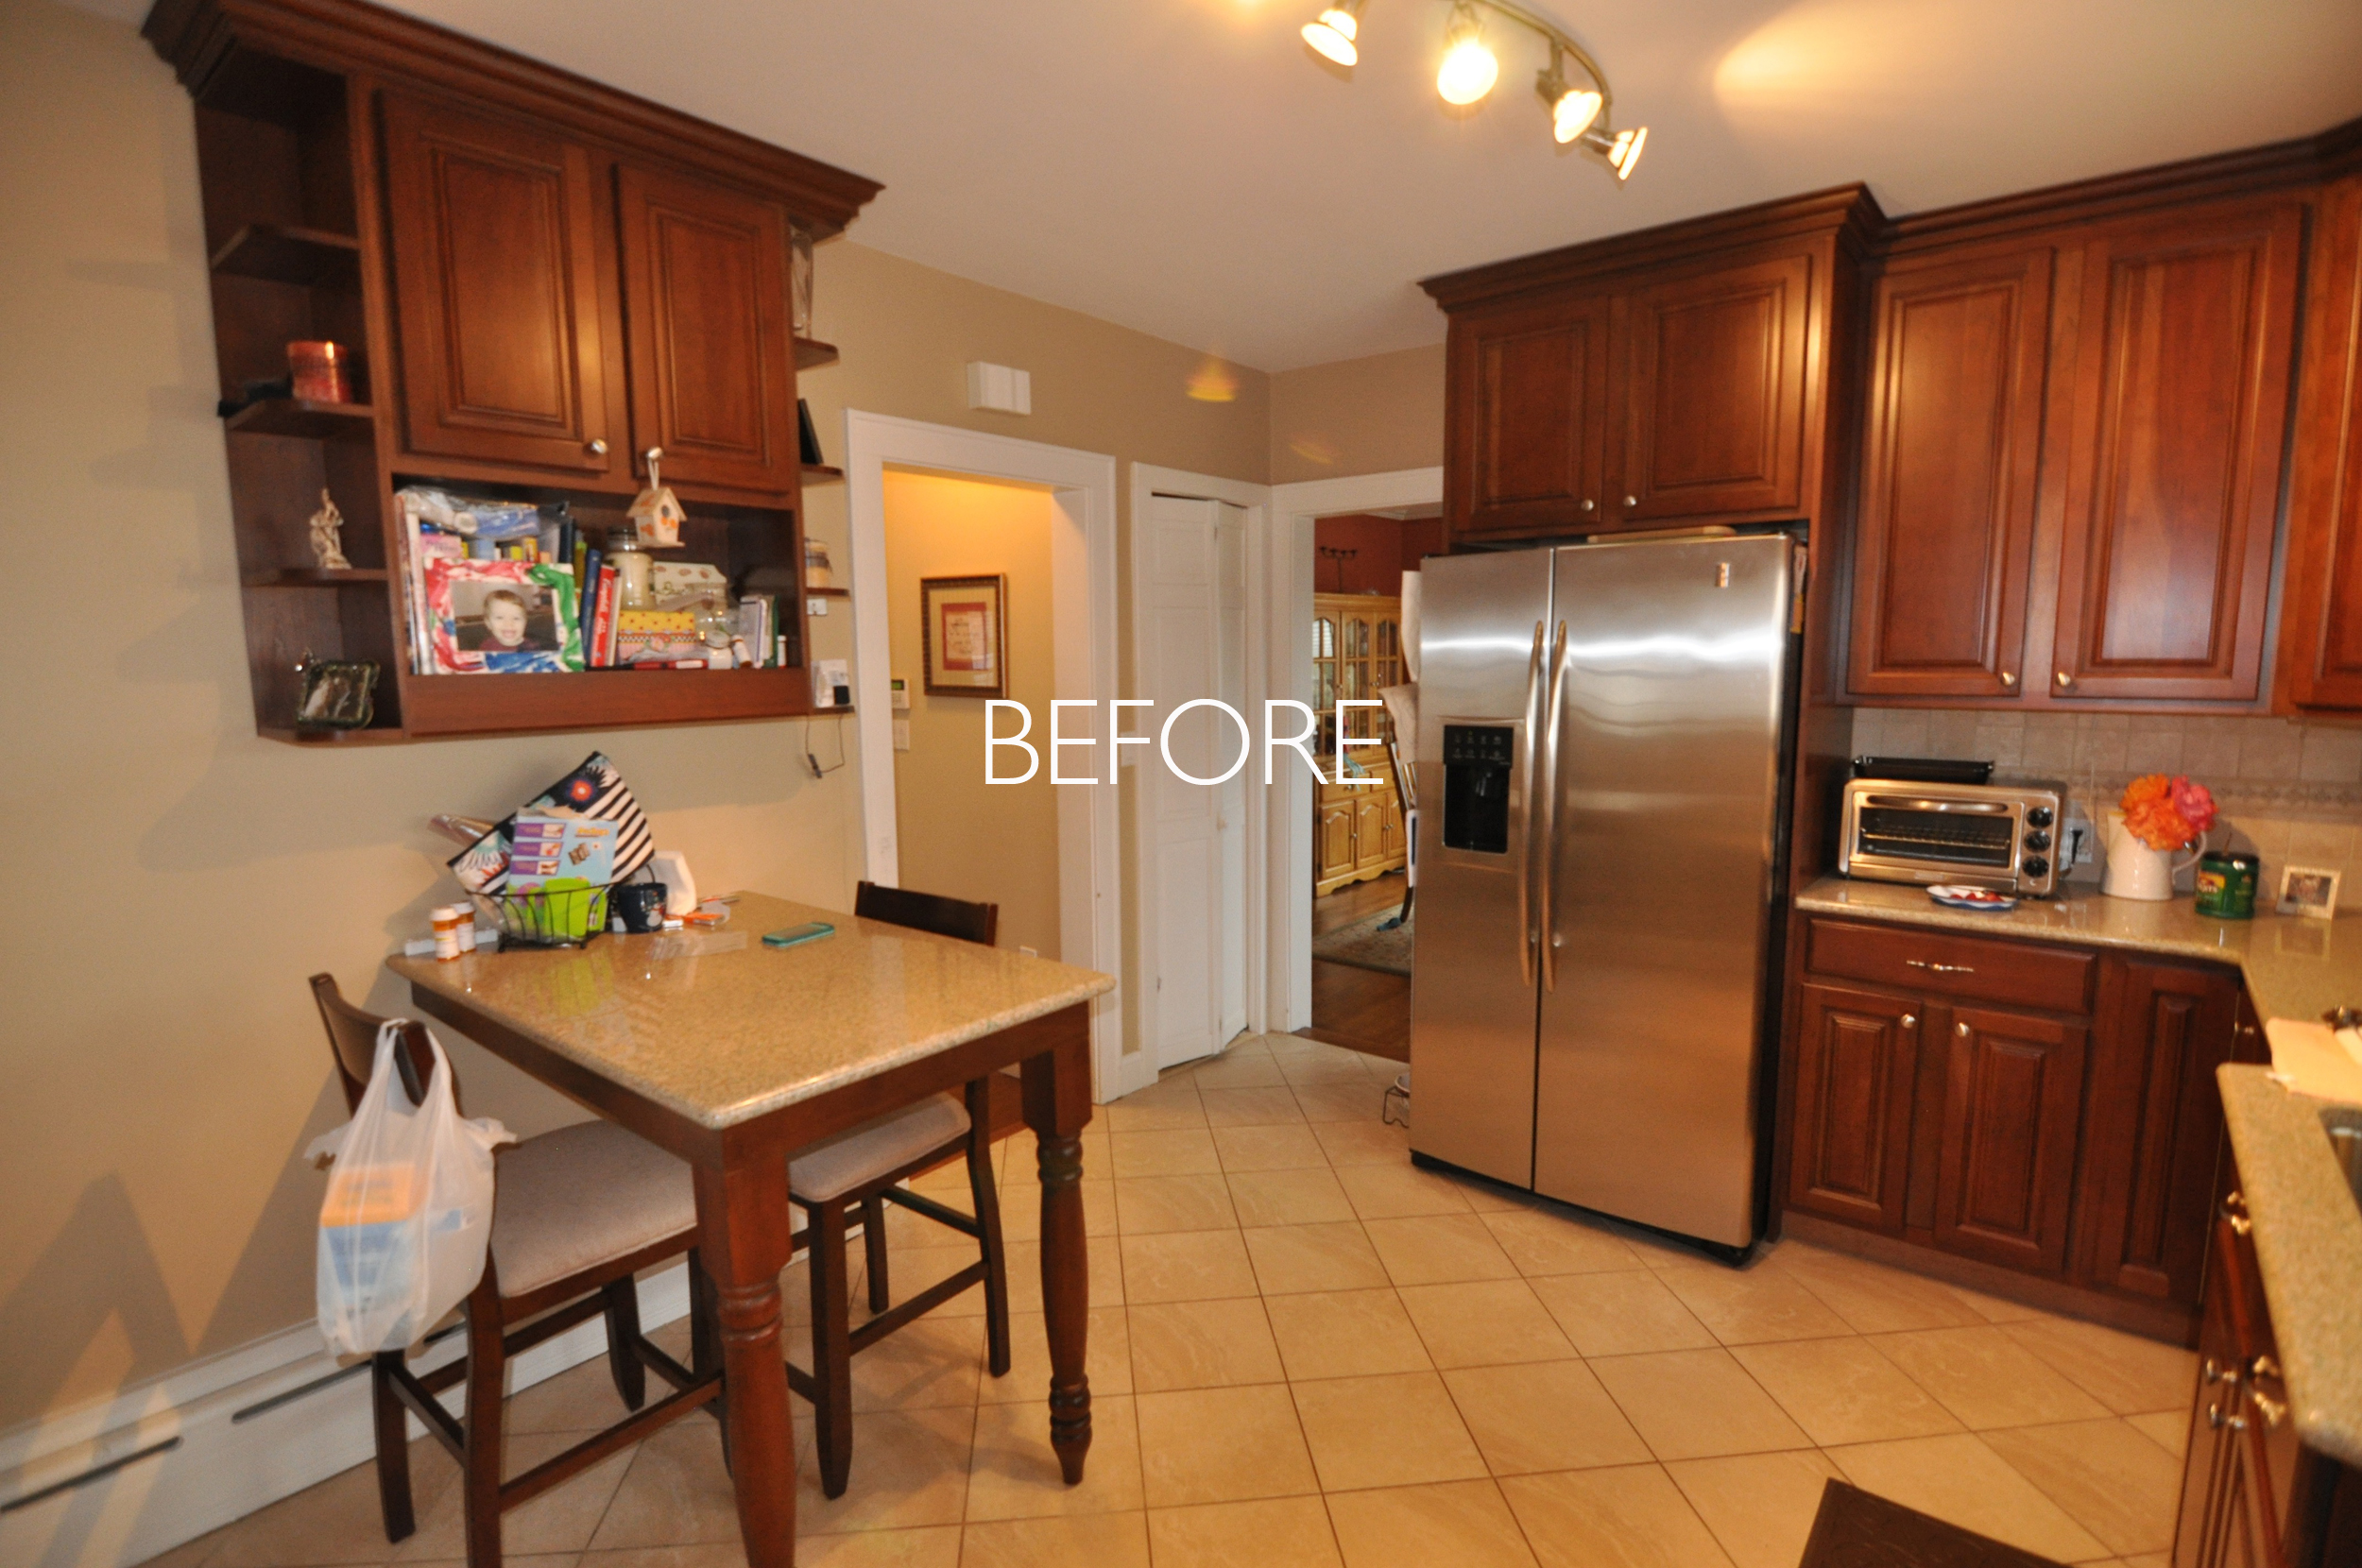 BEFORE Kitchen View to Dining Room_HGTV_Buying and Selling with The Property Brothers_Season 5_Episode 8.jpg